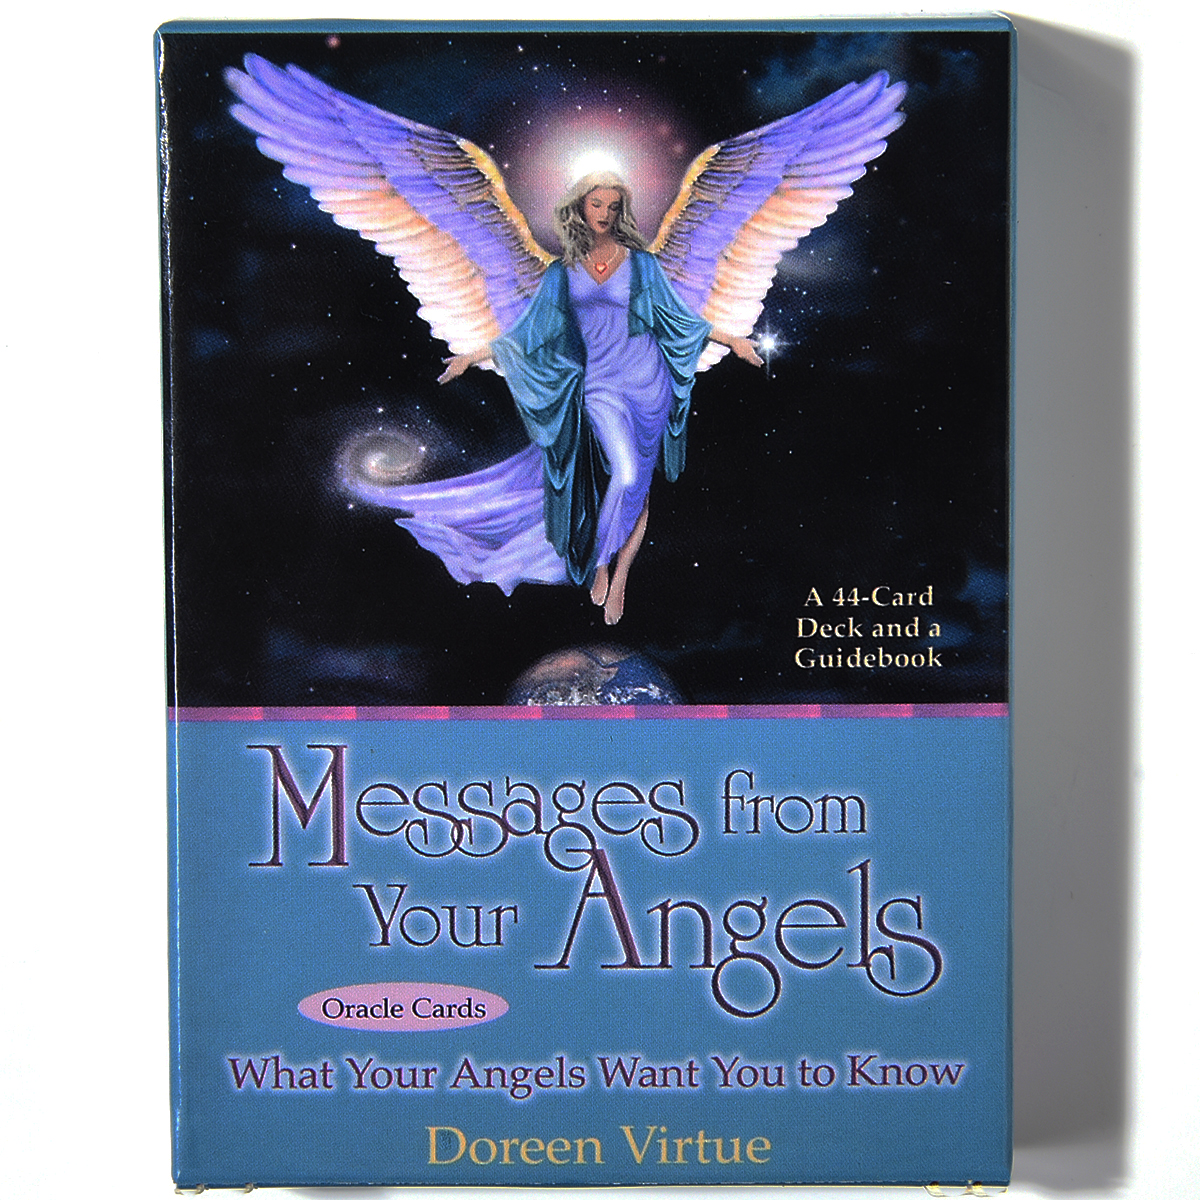 Messages from Your Angels What Your Angels Want You to Know Tarot Oracle Cards image